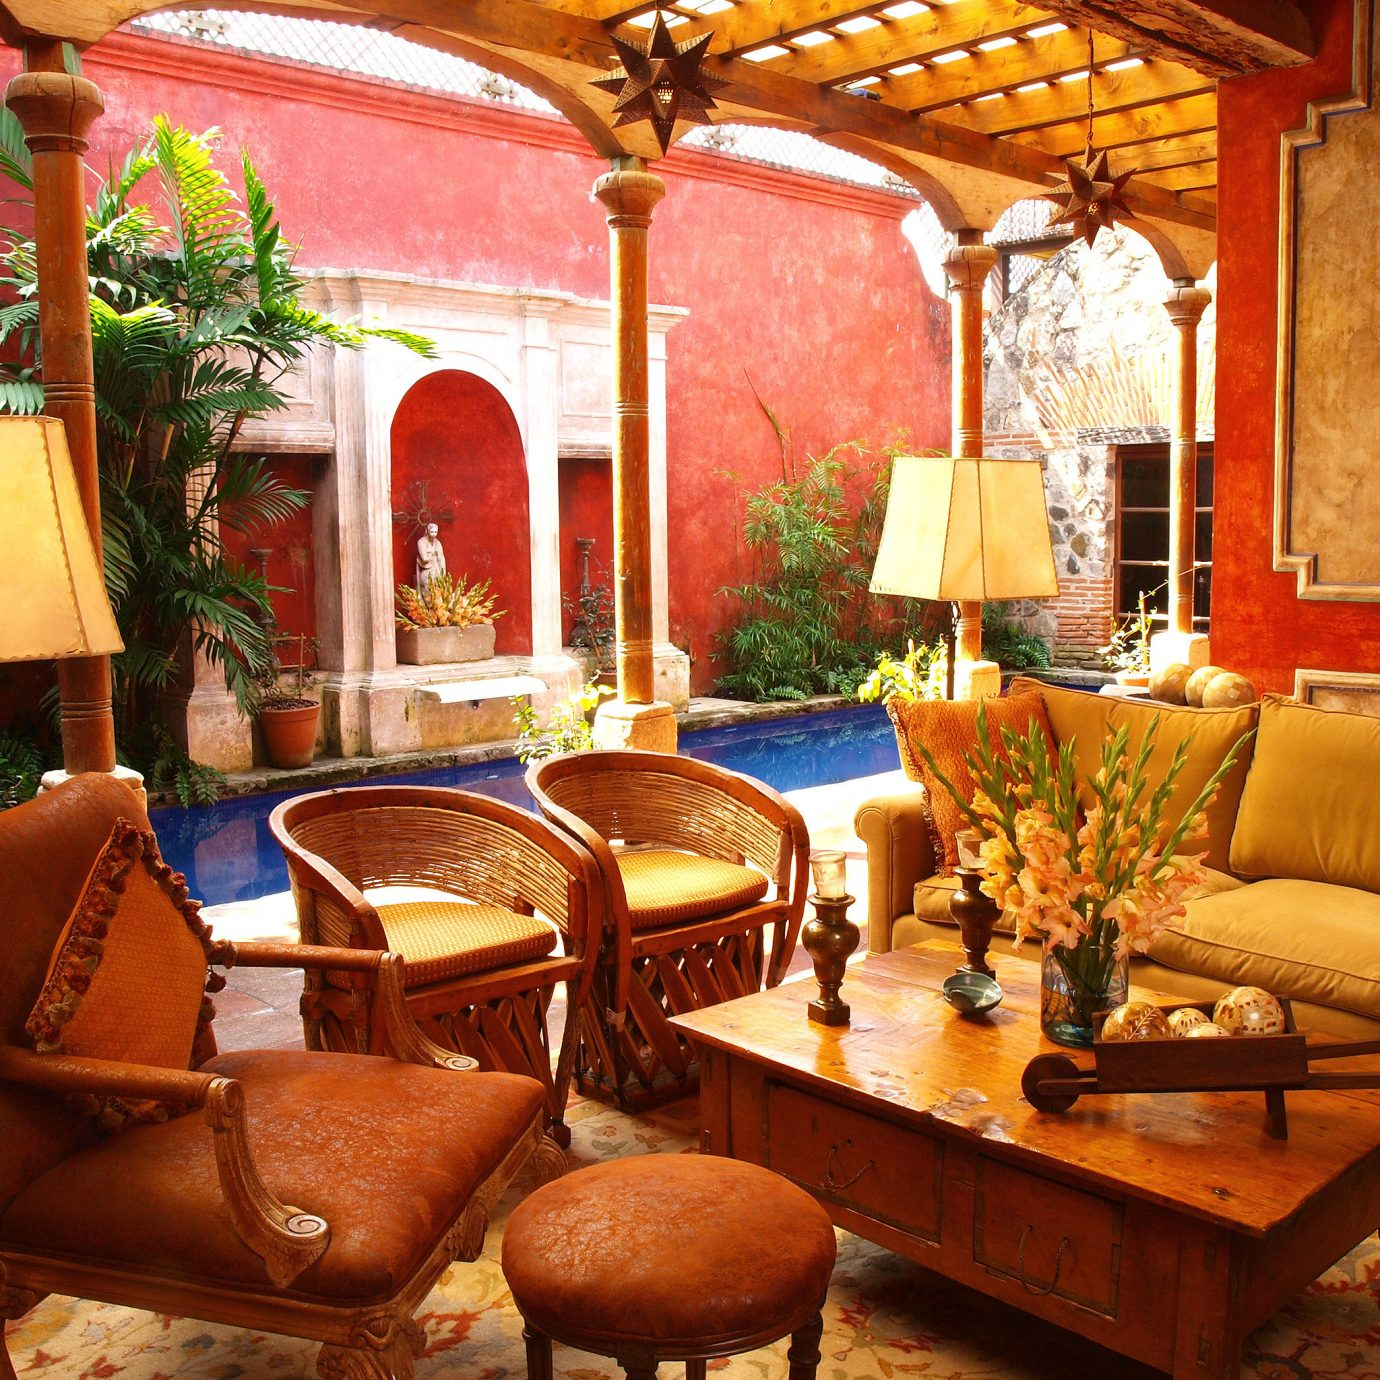 Historic Lounge Pool Rustic property living room hacienda home Lobby Villa cottage Resort